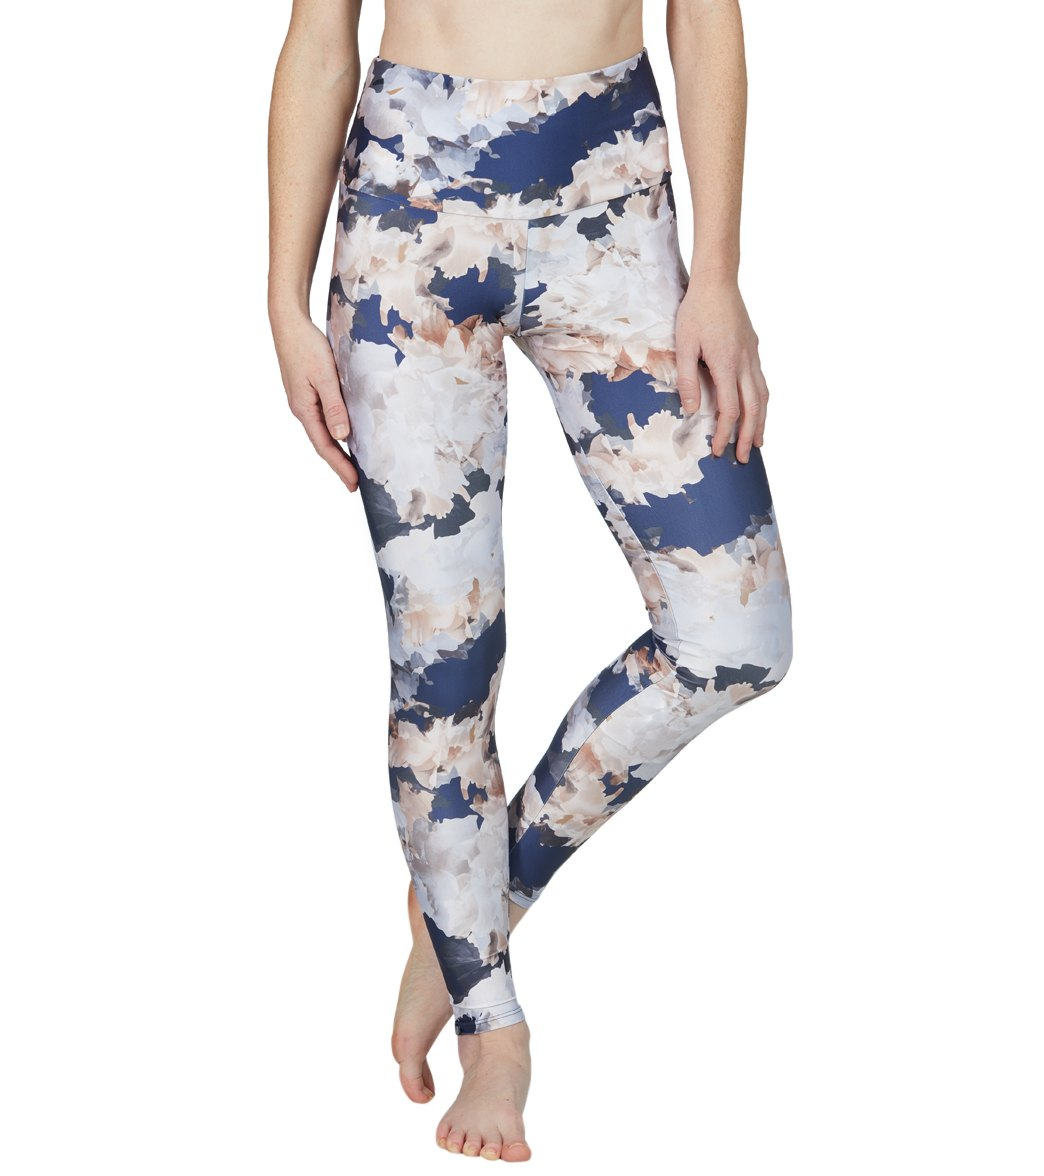 b6ebca3ee5 Onzie High Waisted Yoga Leggings at SwimOutlet.com - Free Shipping